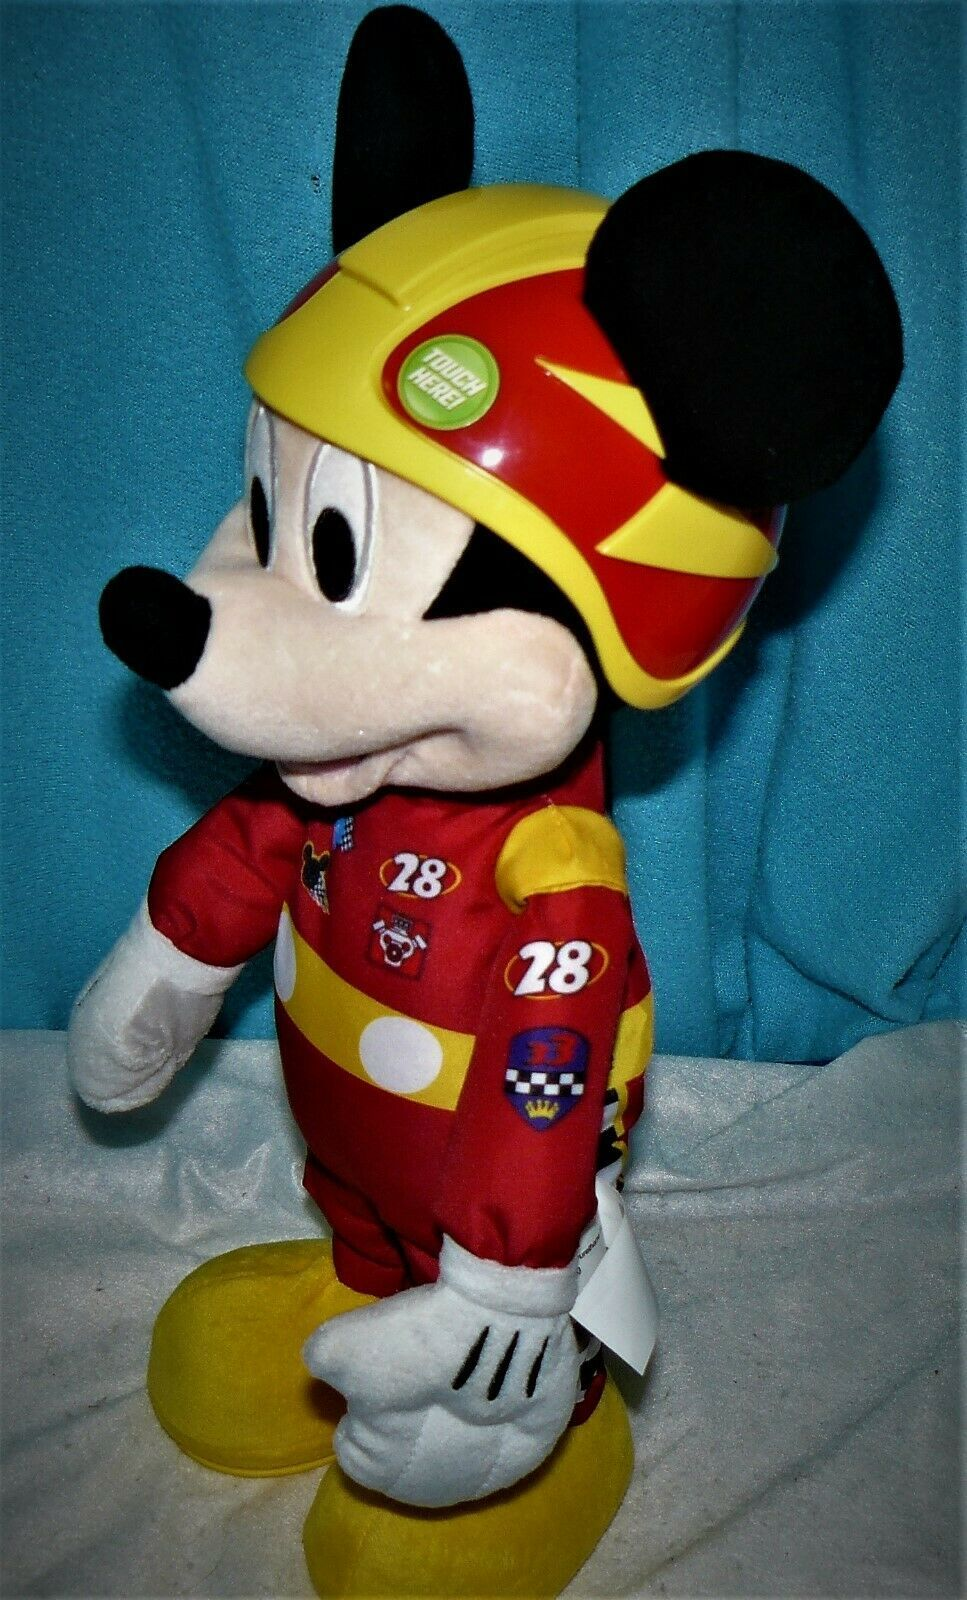 Disney Mickey And The Roadster Racers, Racing Adventures Mickey PLUSH DOLL ONLY